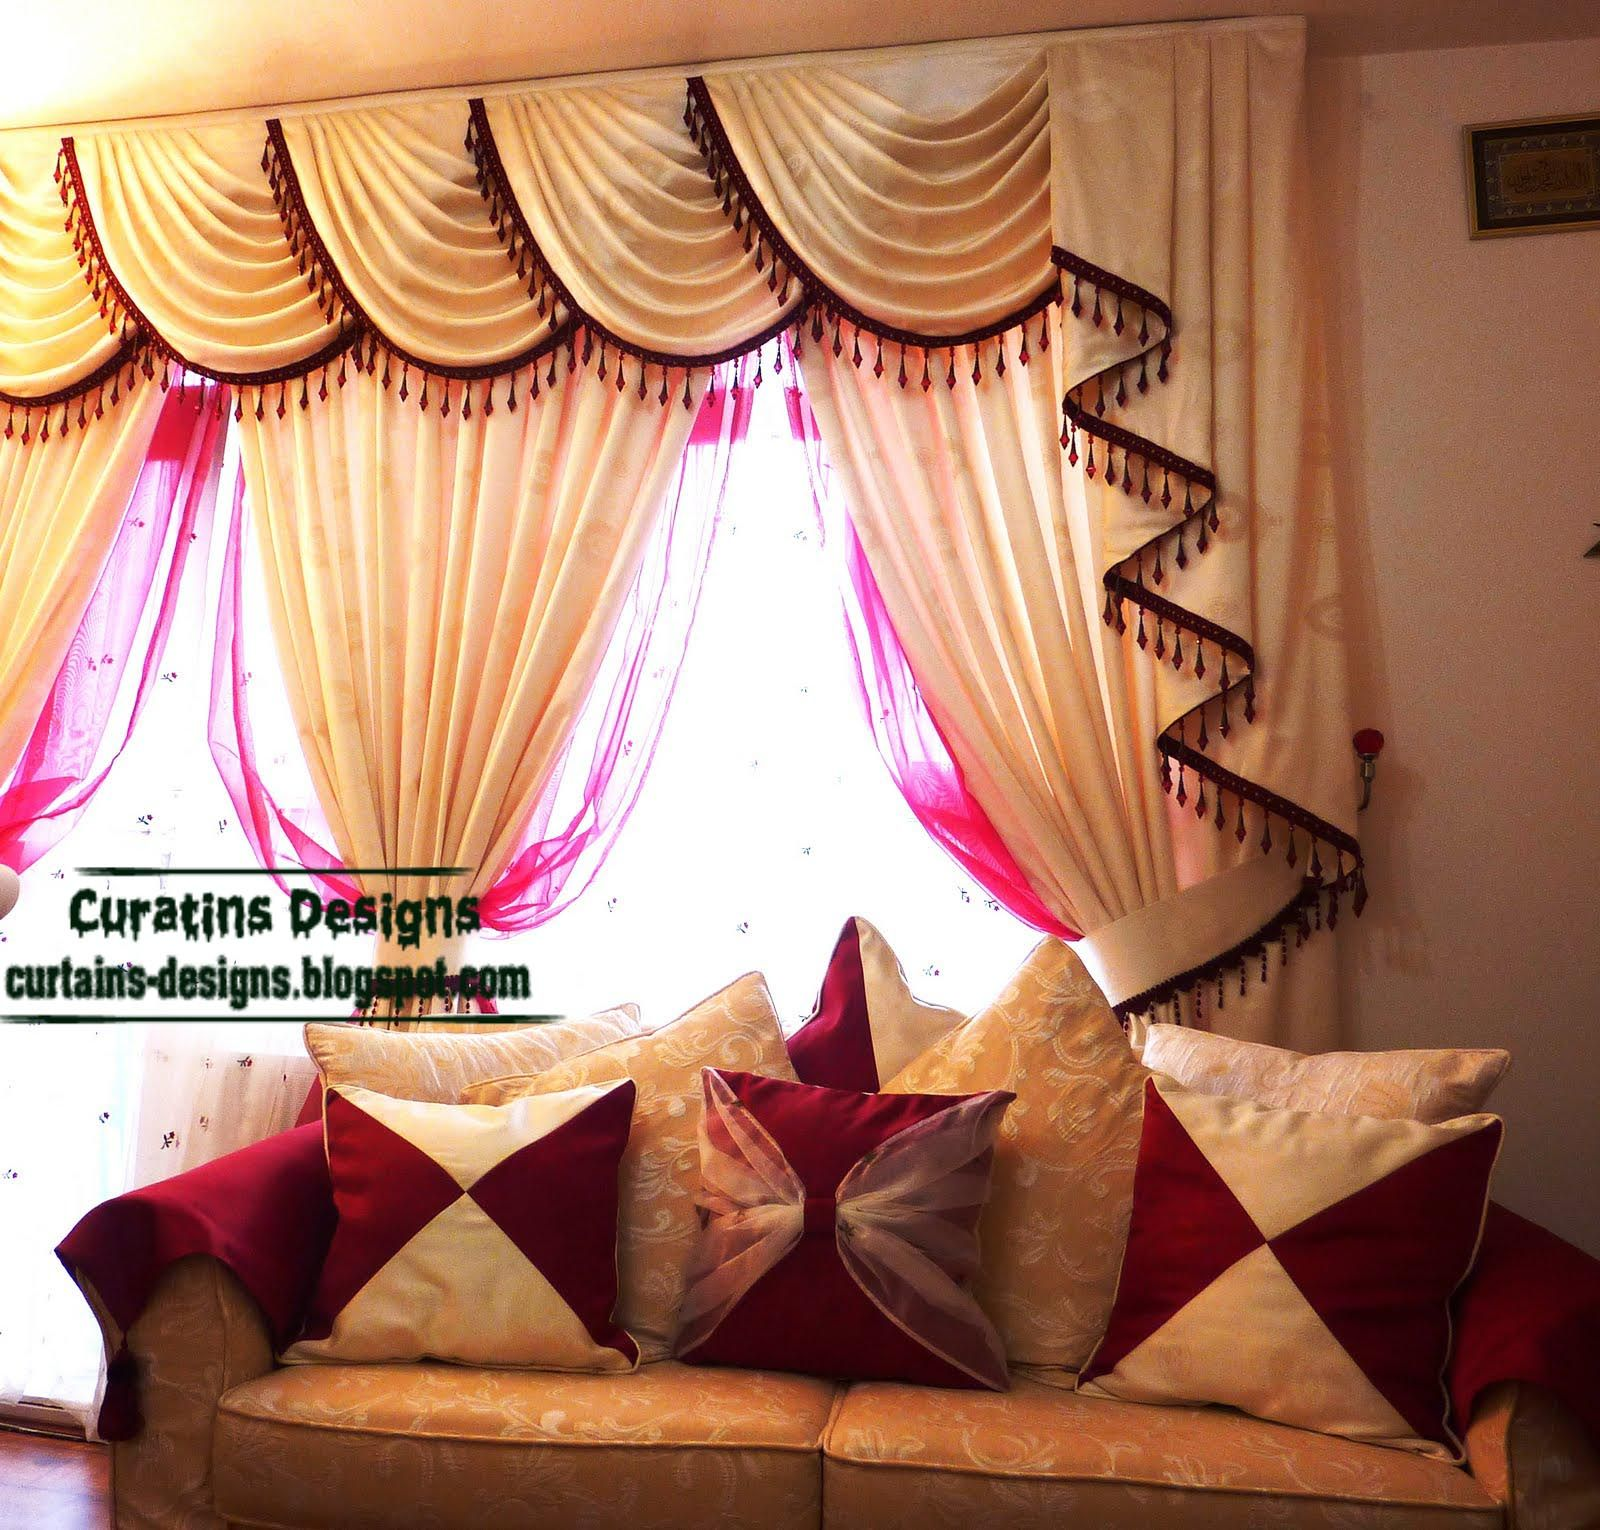 Designs For Curtains In Living Room Livingroomcurtains  Indian Drapes Curtain Design For Living